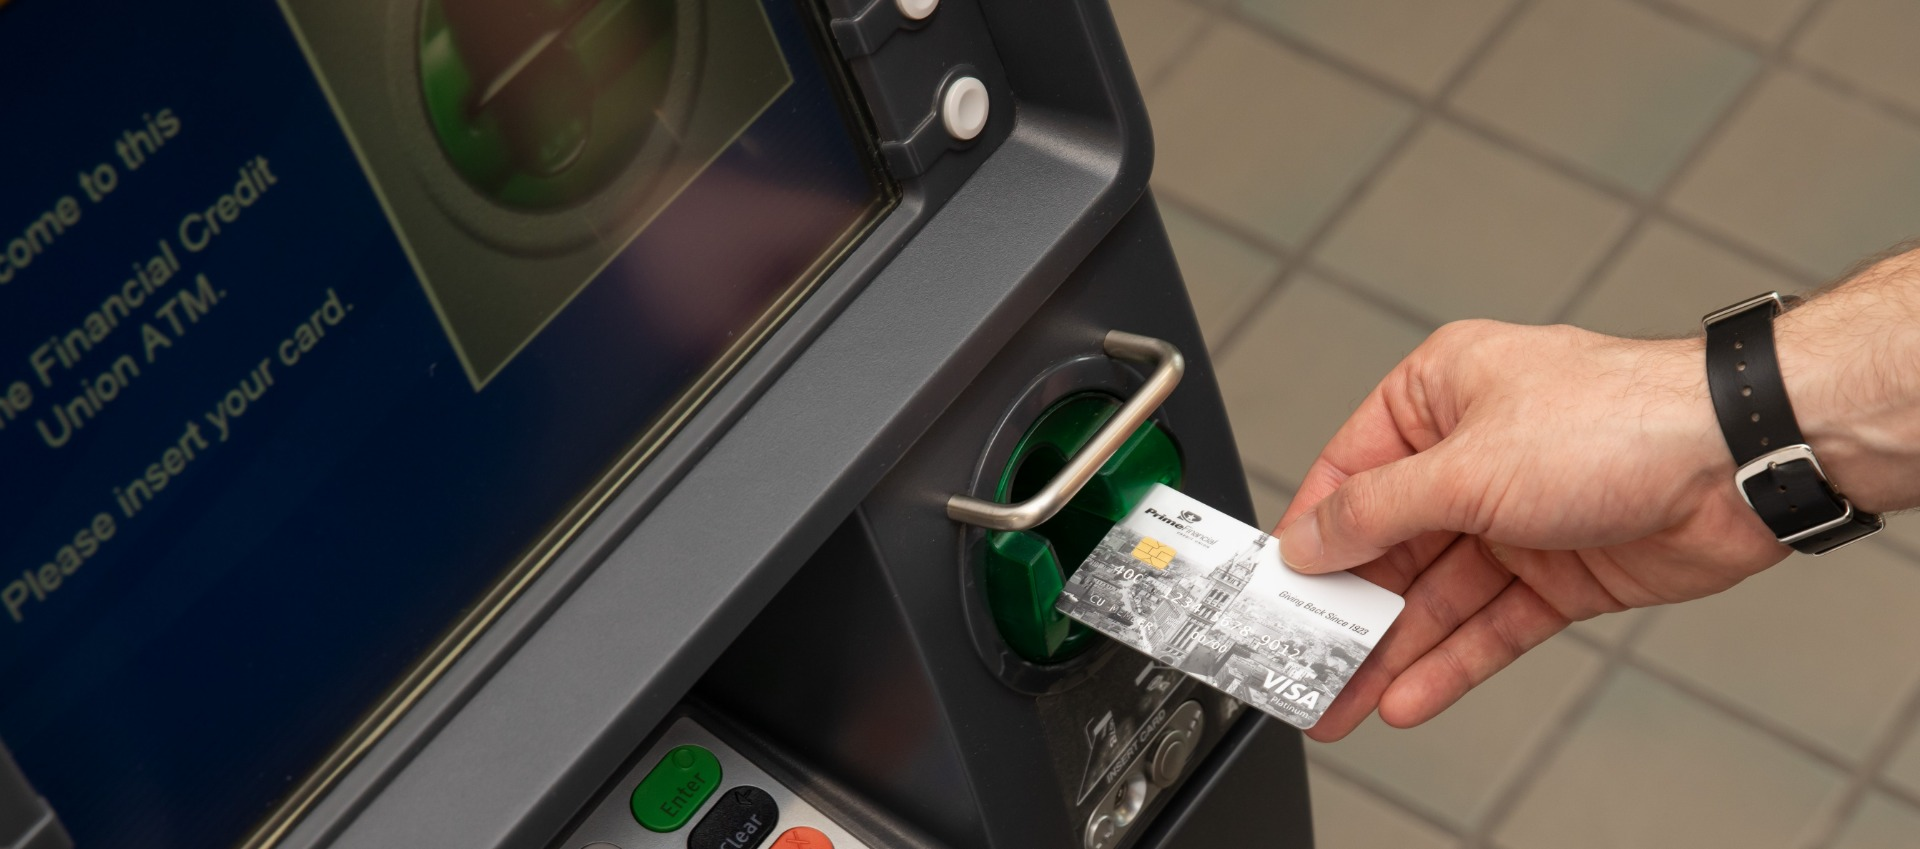 Inserting Card into ATM